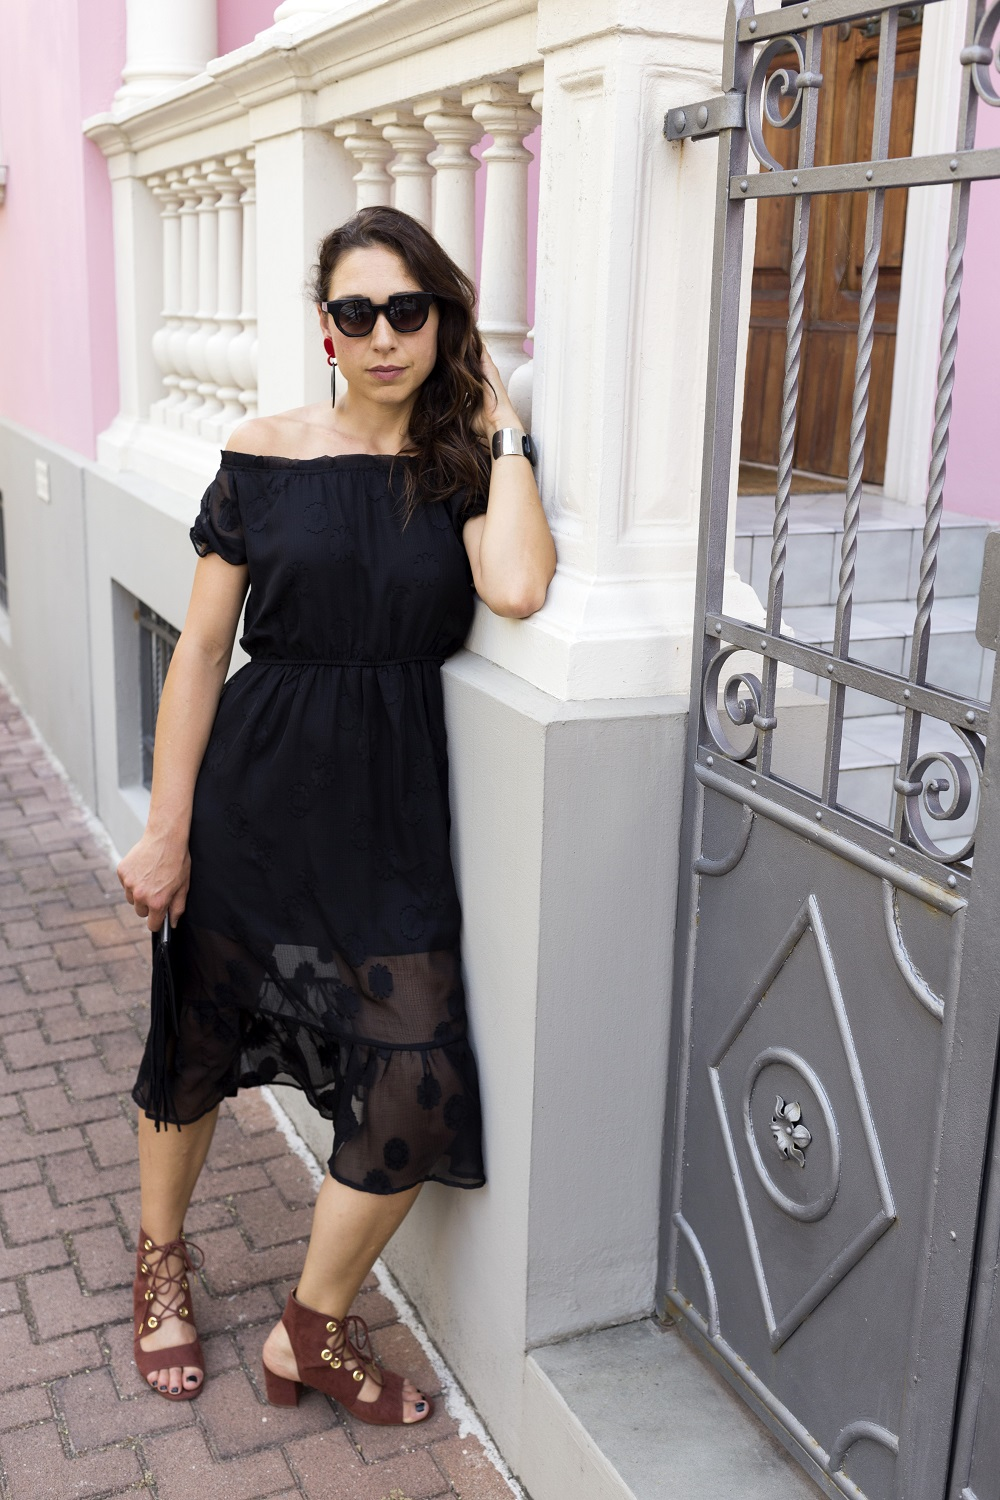 New look wearing a romantic Black dress by Sammydress